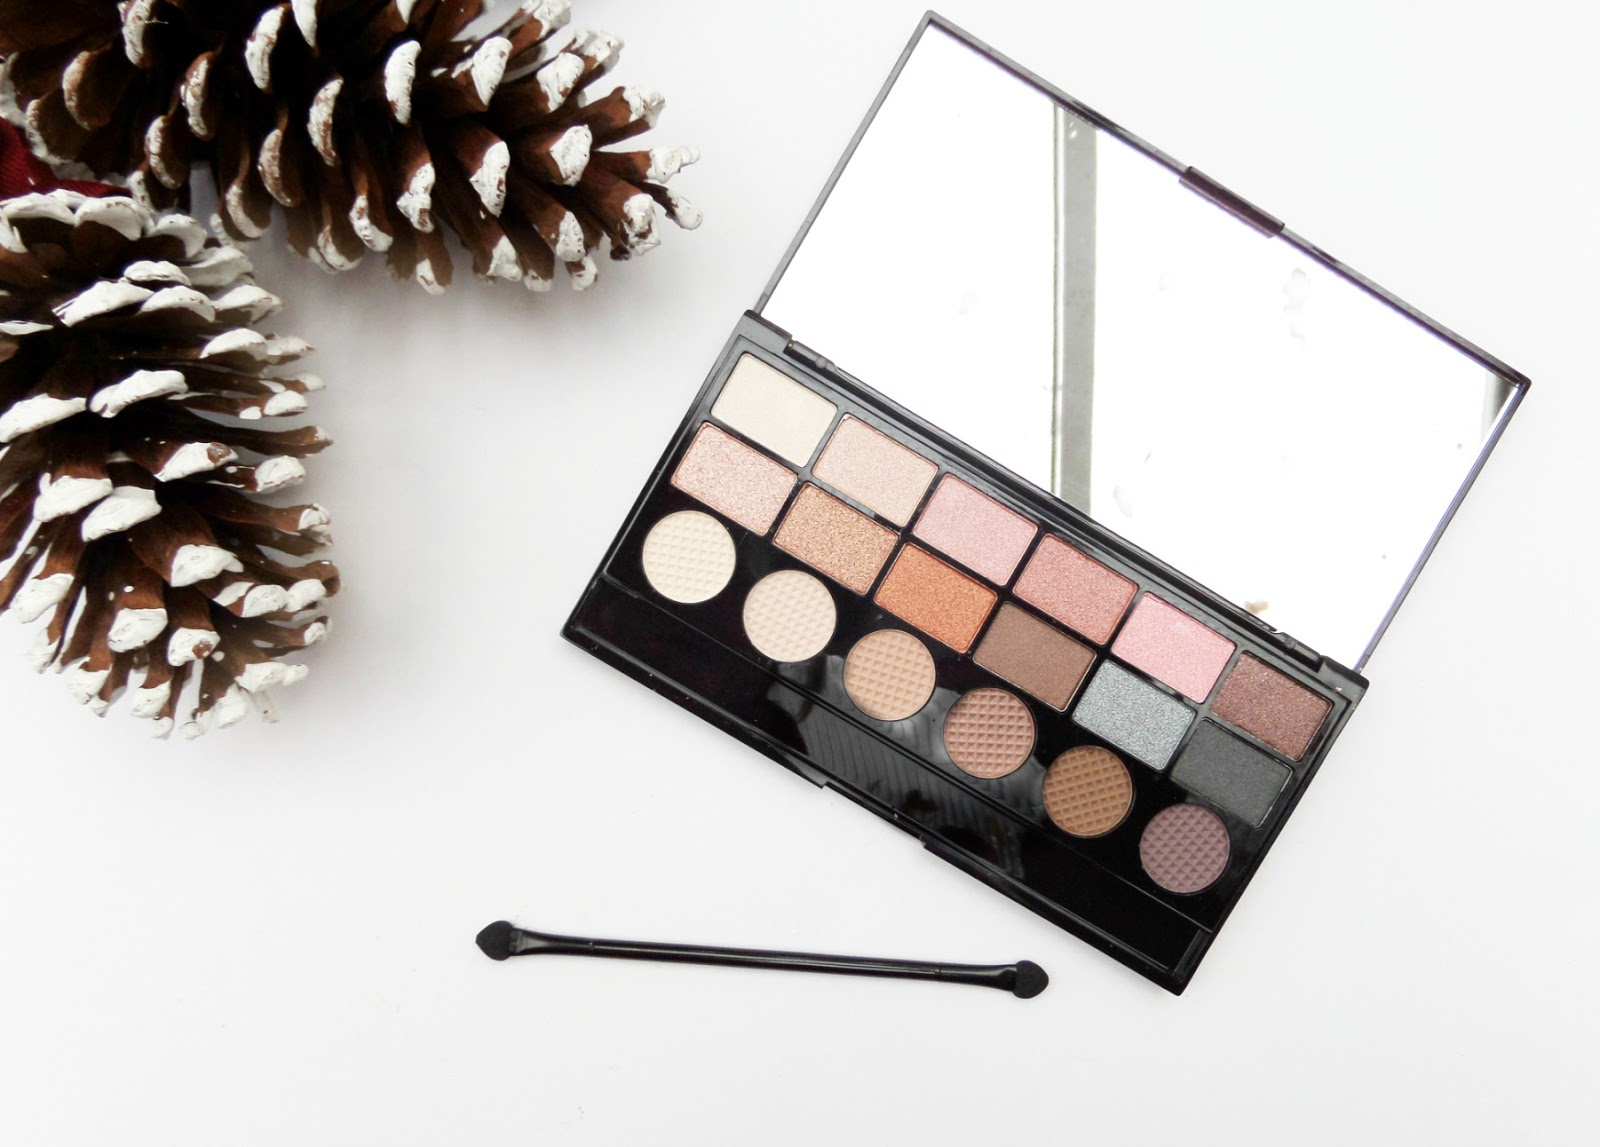 The Makeup Revolution Girl Panic Eyeshadow Palette